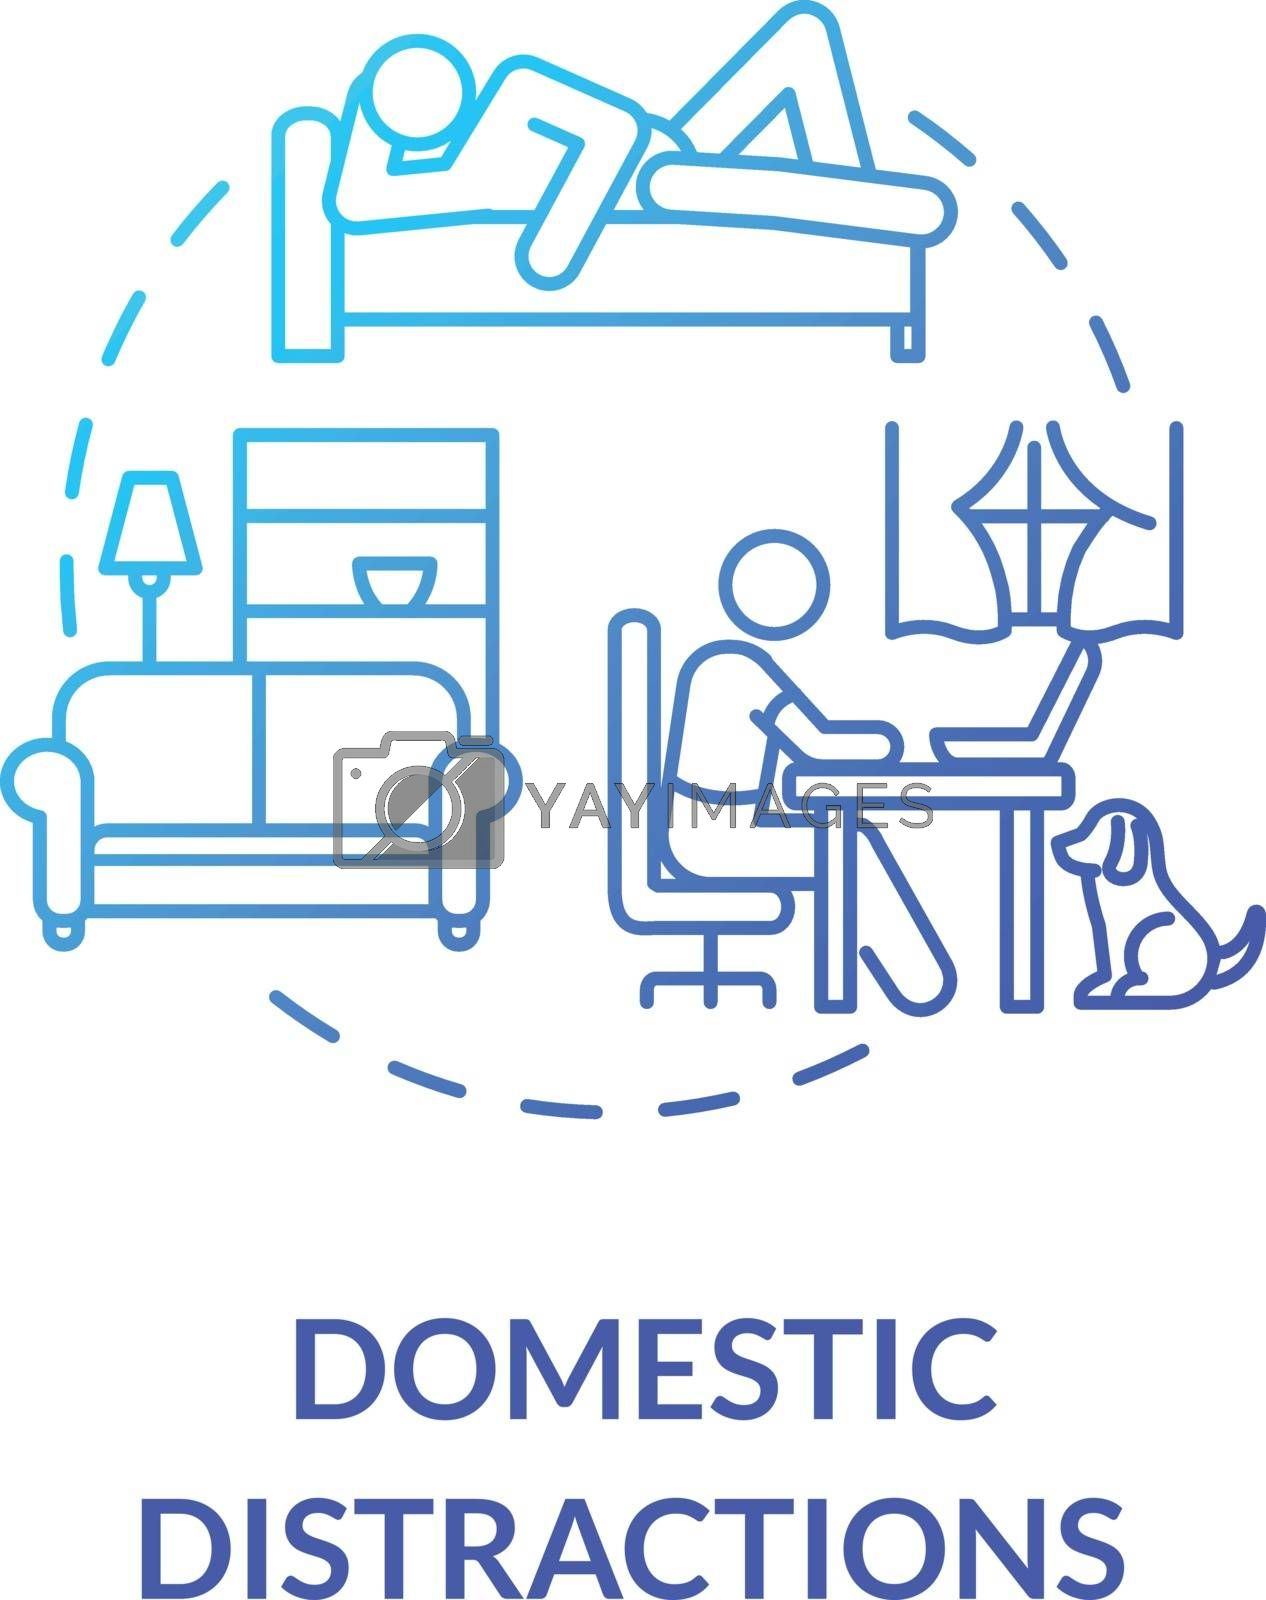 Domestic distractions concept icon. Home based education. Elearning. Distance learning and lessons. Procrastination idea thin line illustration. Vector isolated outline RGB color drawing